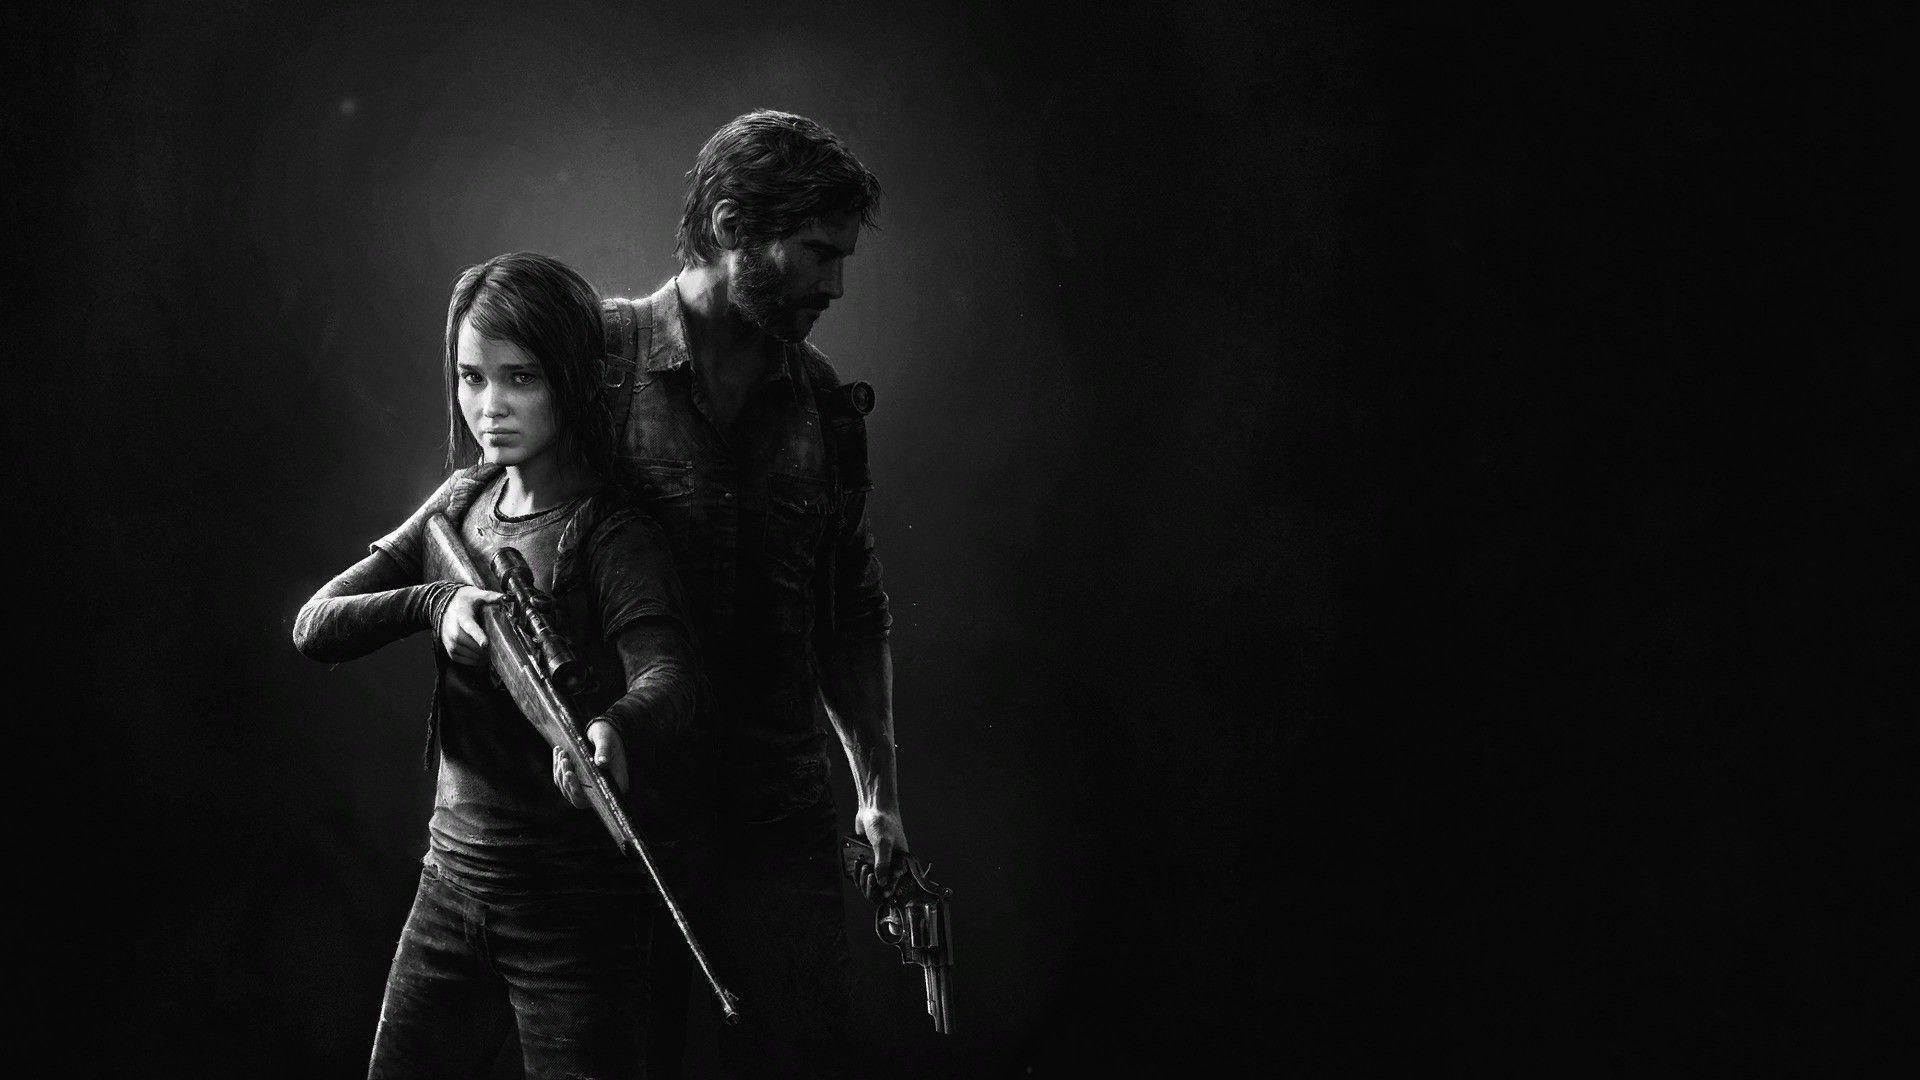 The Last Of Us HD Wallpaper 4   1920 X 1080 stmednet 1920x1080